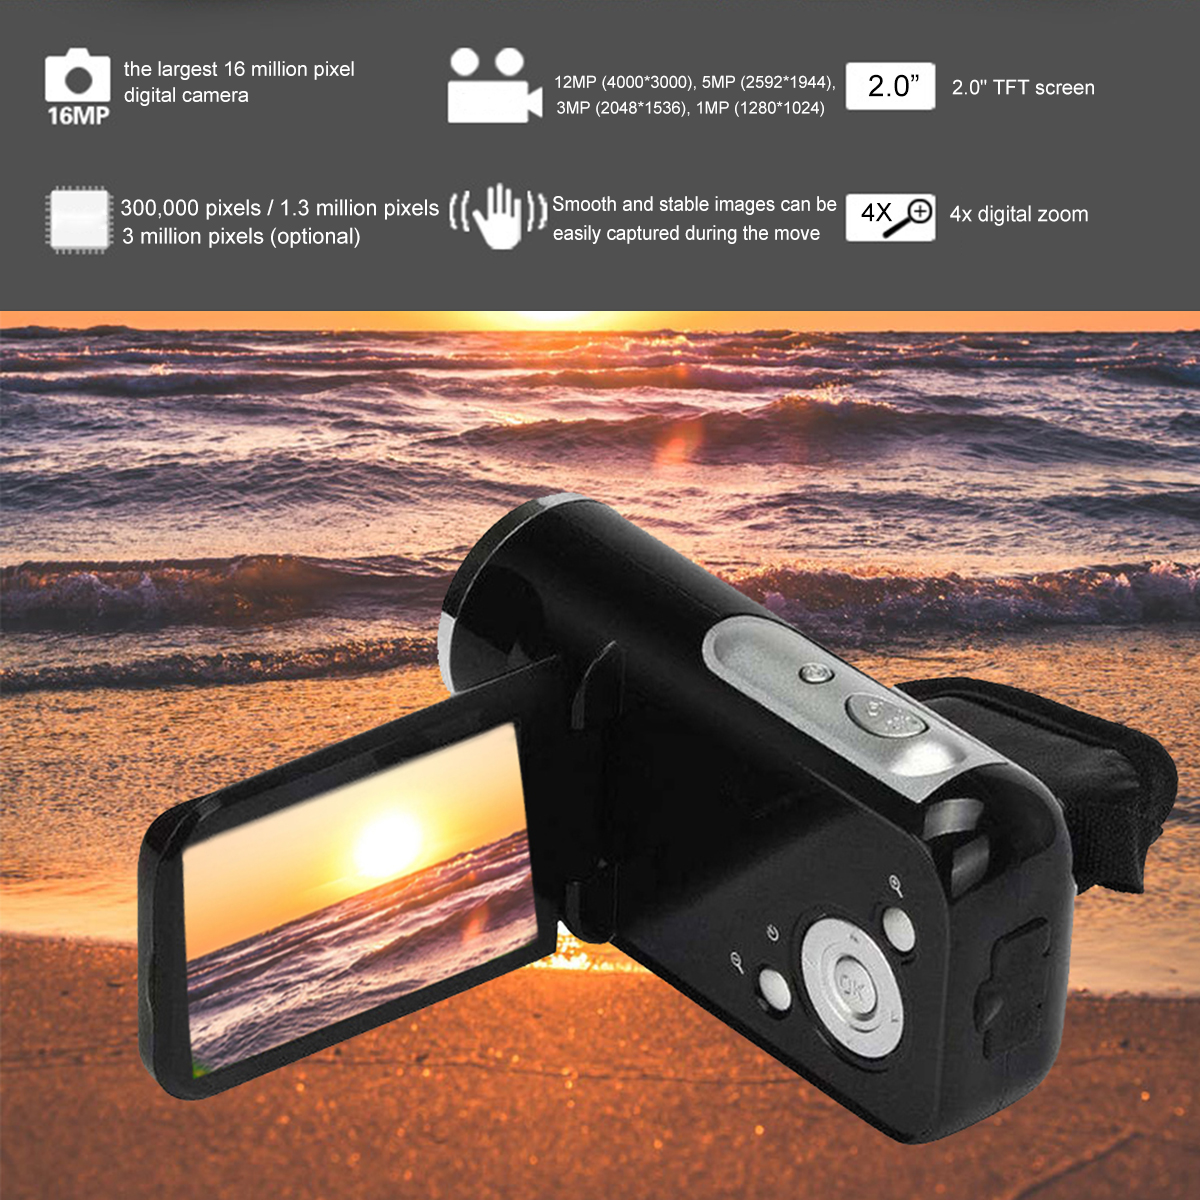 Portable digital camera camcorder Full HD 720p 16MP video camera fixed lens 4X Zoom Video camcorders professional Ultra-light image